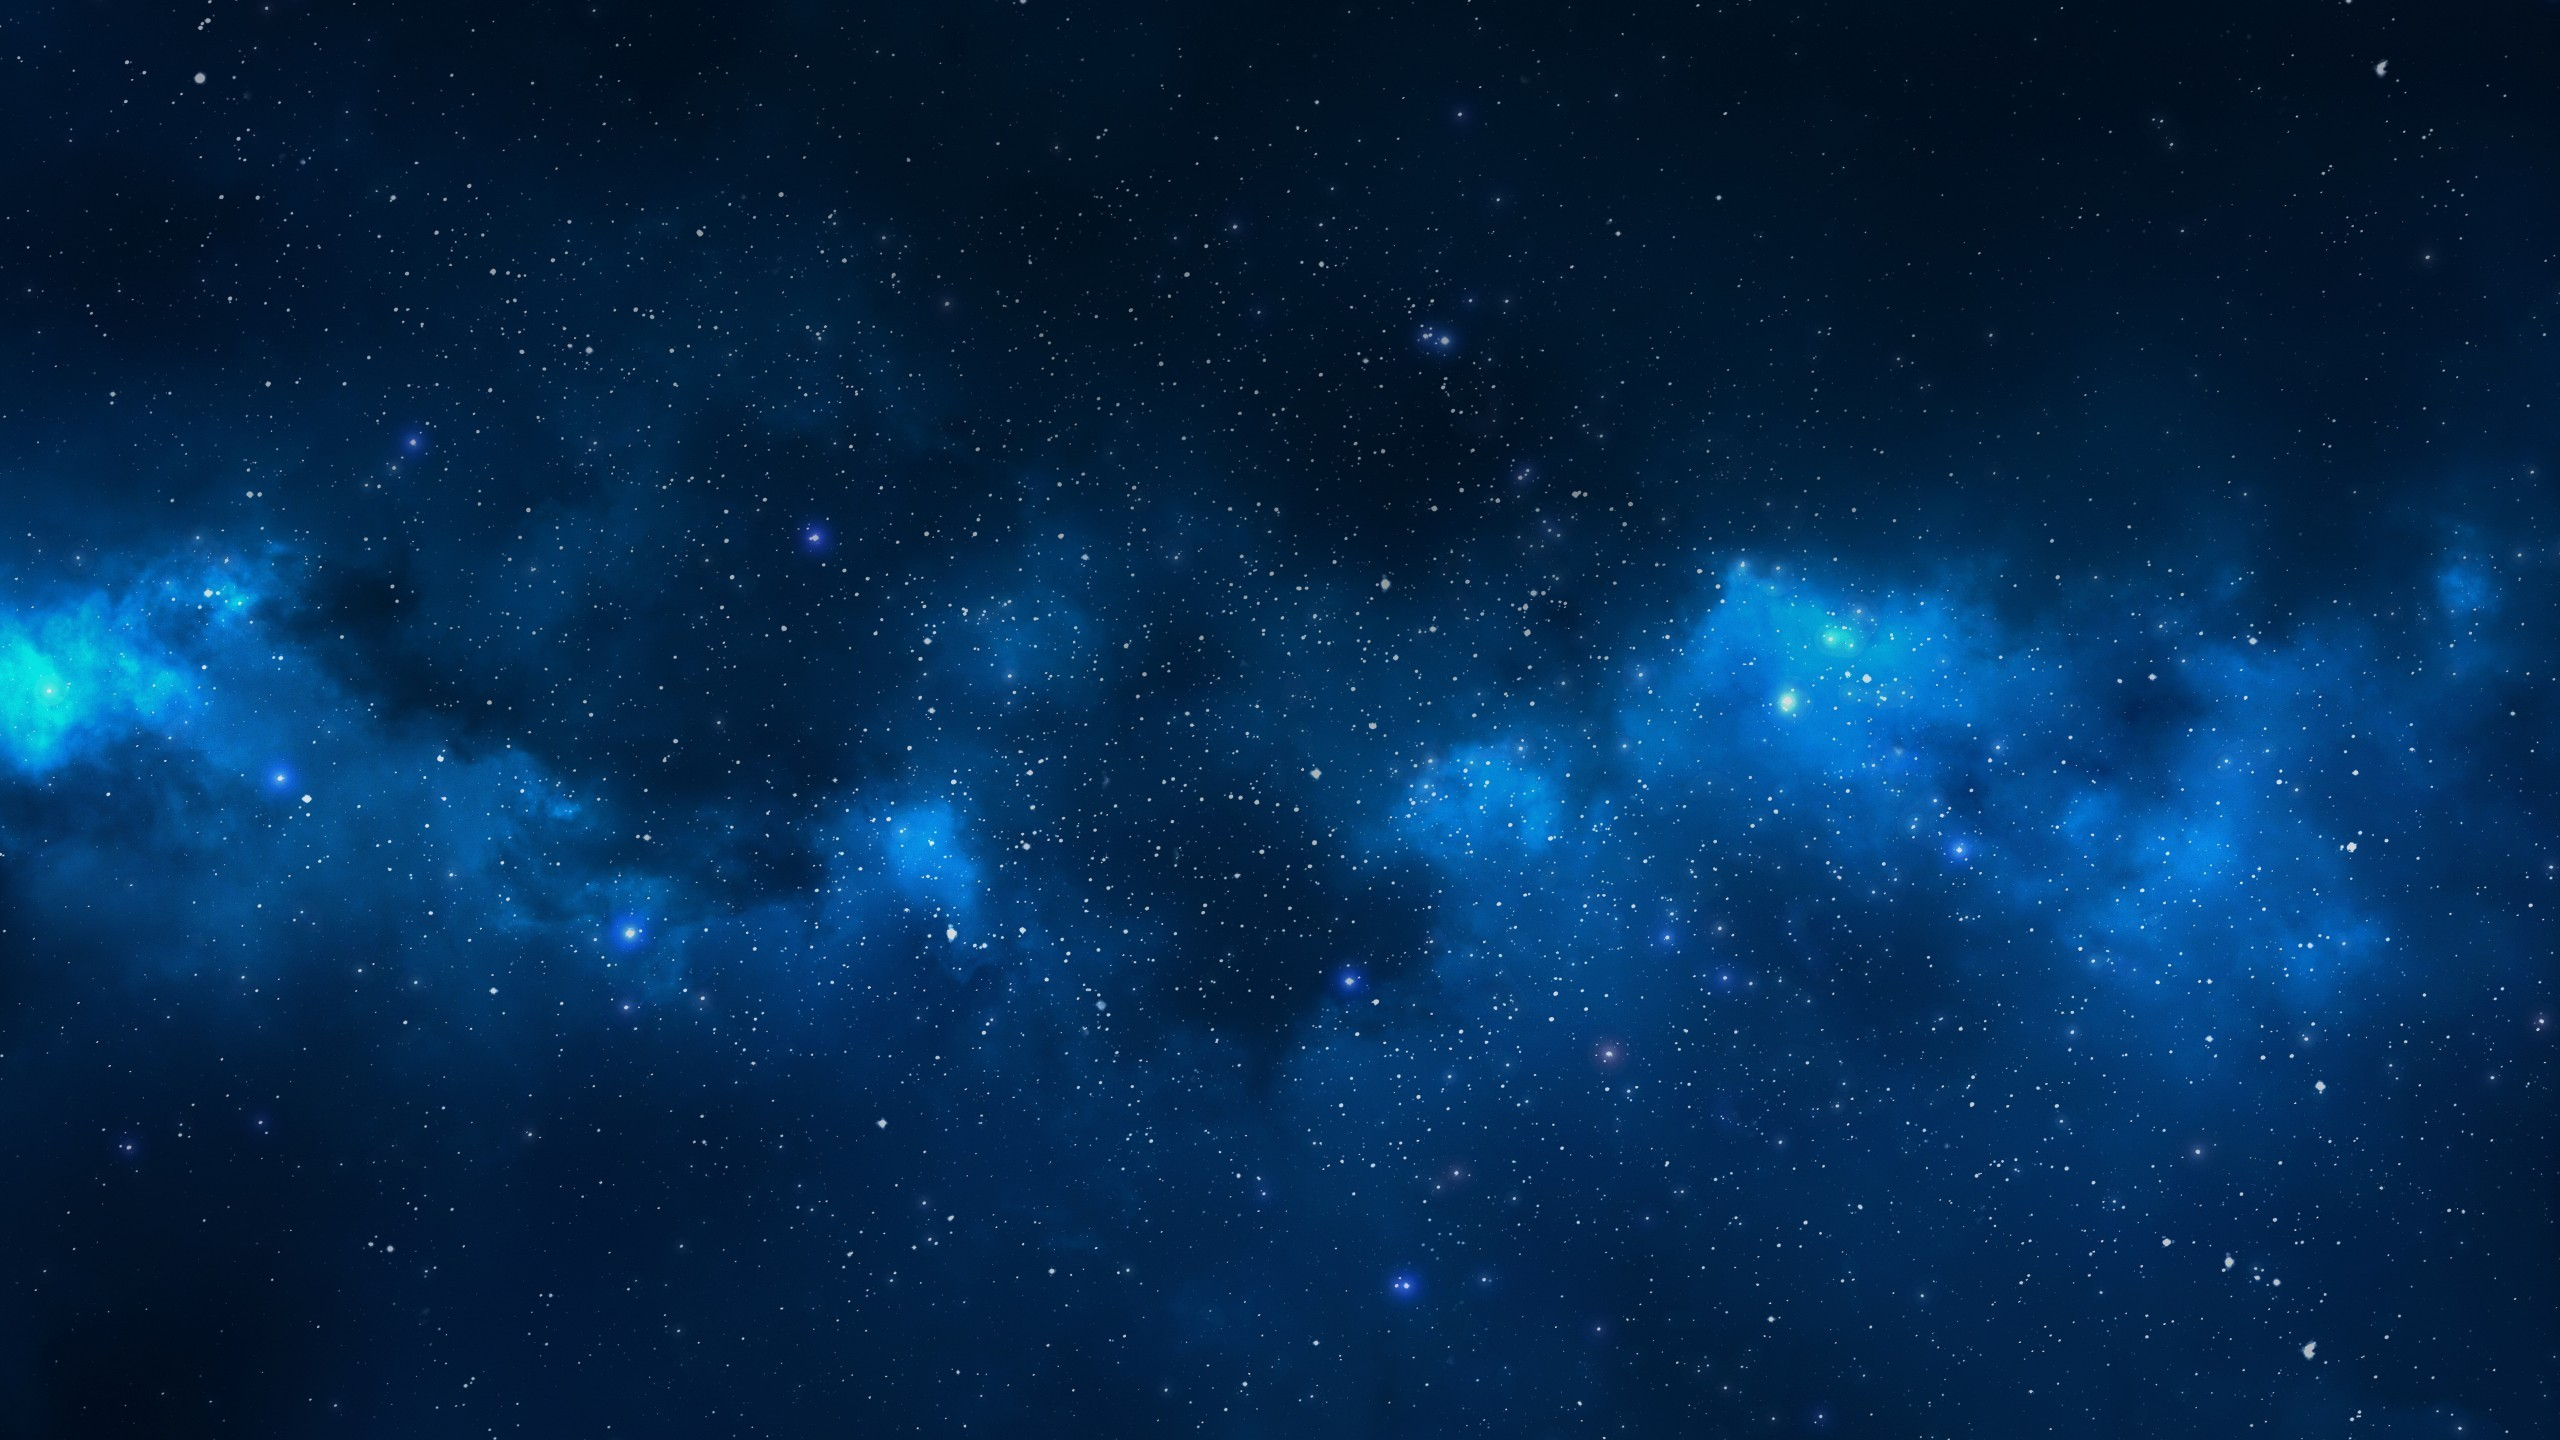 2560x1440 Blue Galaxy Stars Wallpaper (page 2) - Pics about space